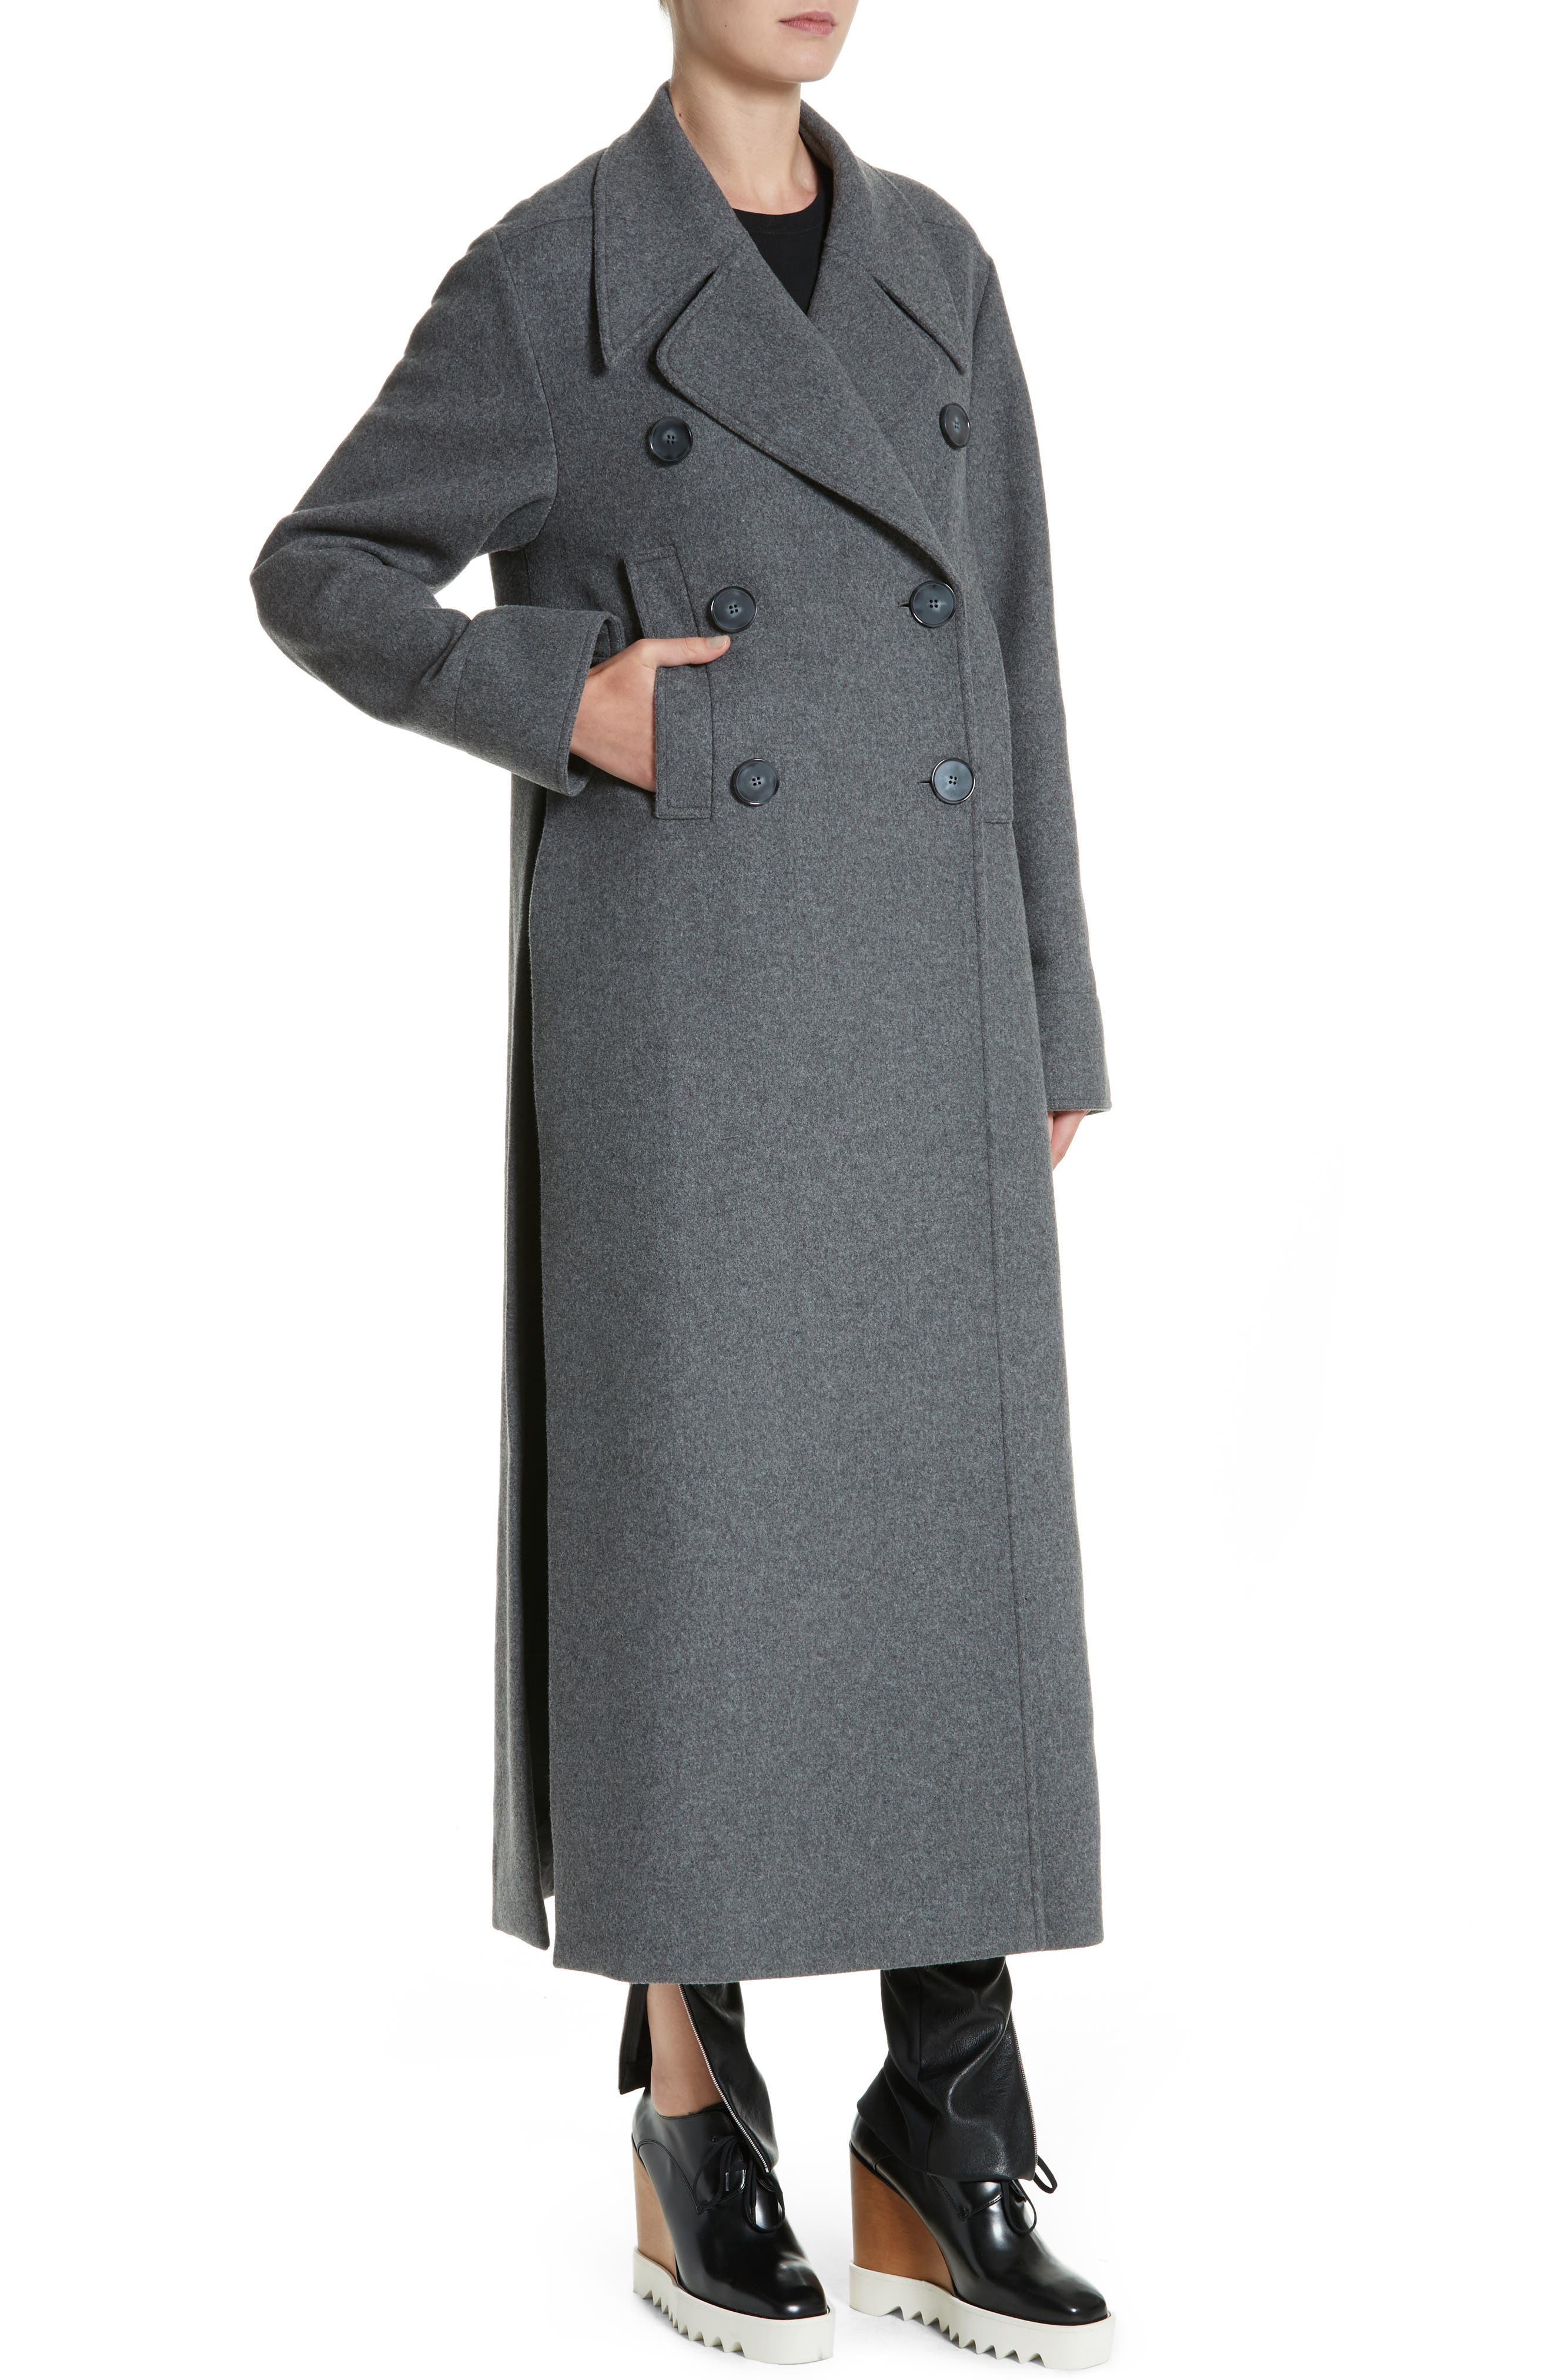 Edwina Long Double Breasted Wool Blend Coat,                             Alternate thumbnail 4, color,                             Graphite